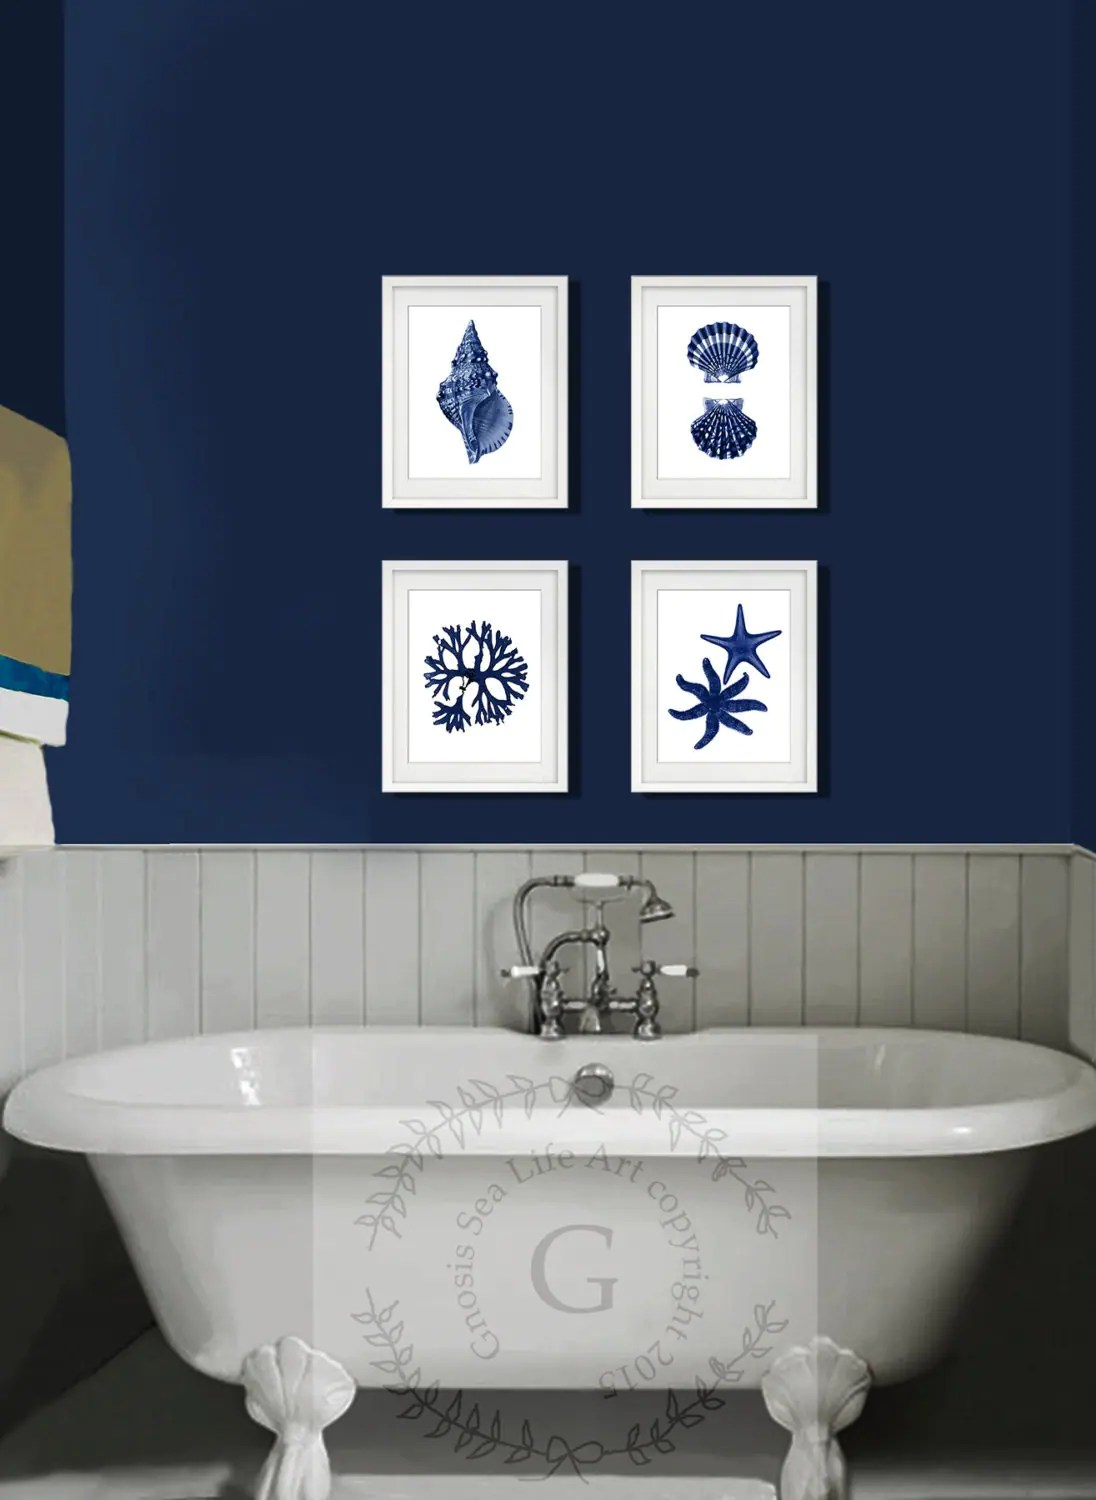 Pictures For Bathroom Walls Coastal Wall Decor Navy Blue Wall Art Set Of 4 Beach Decor